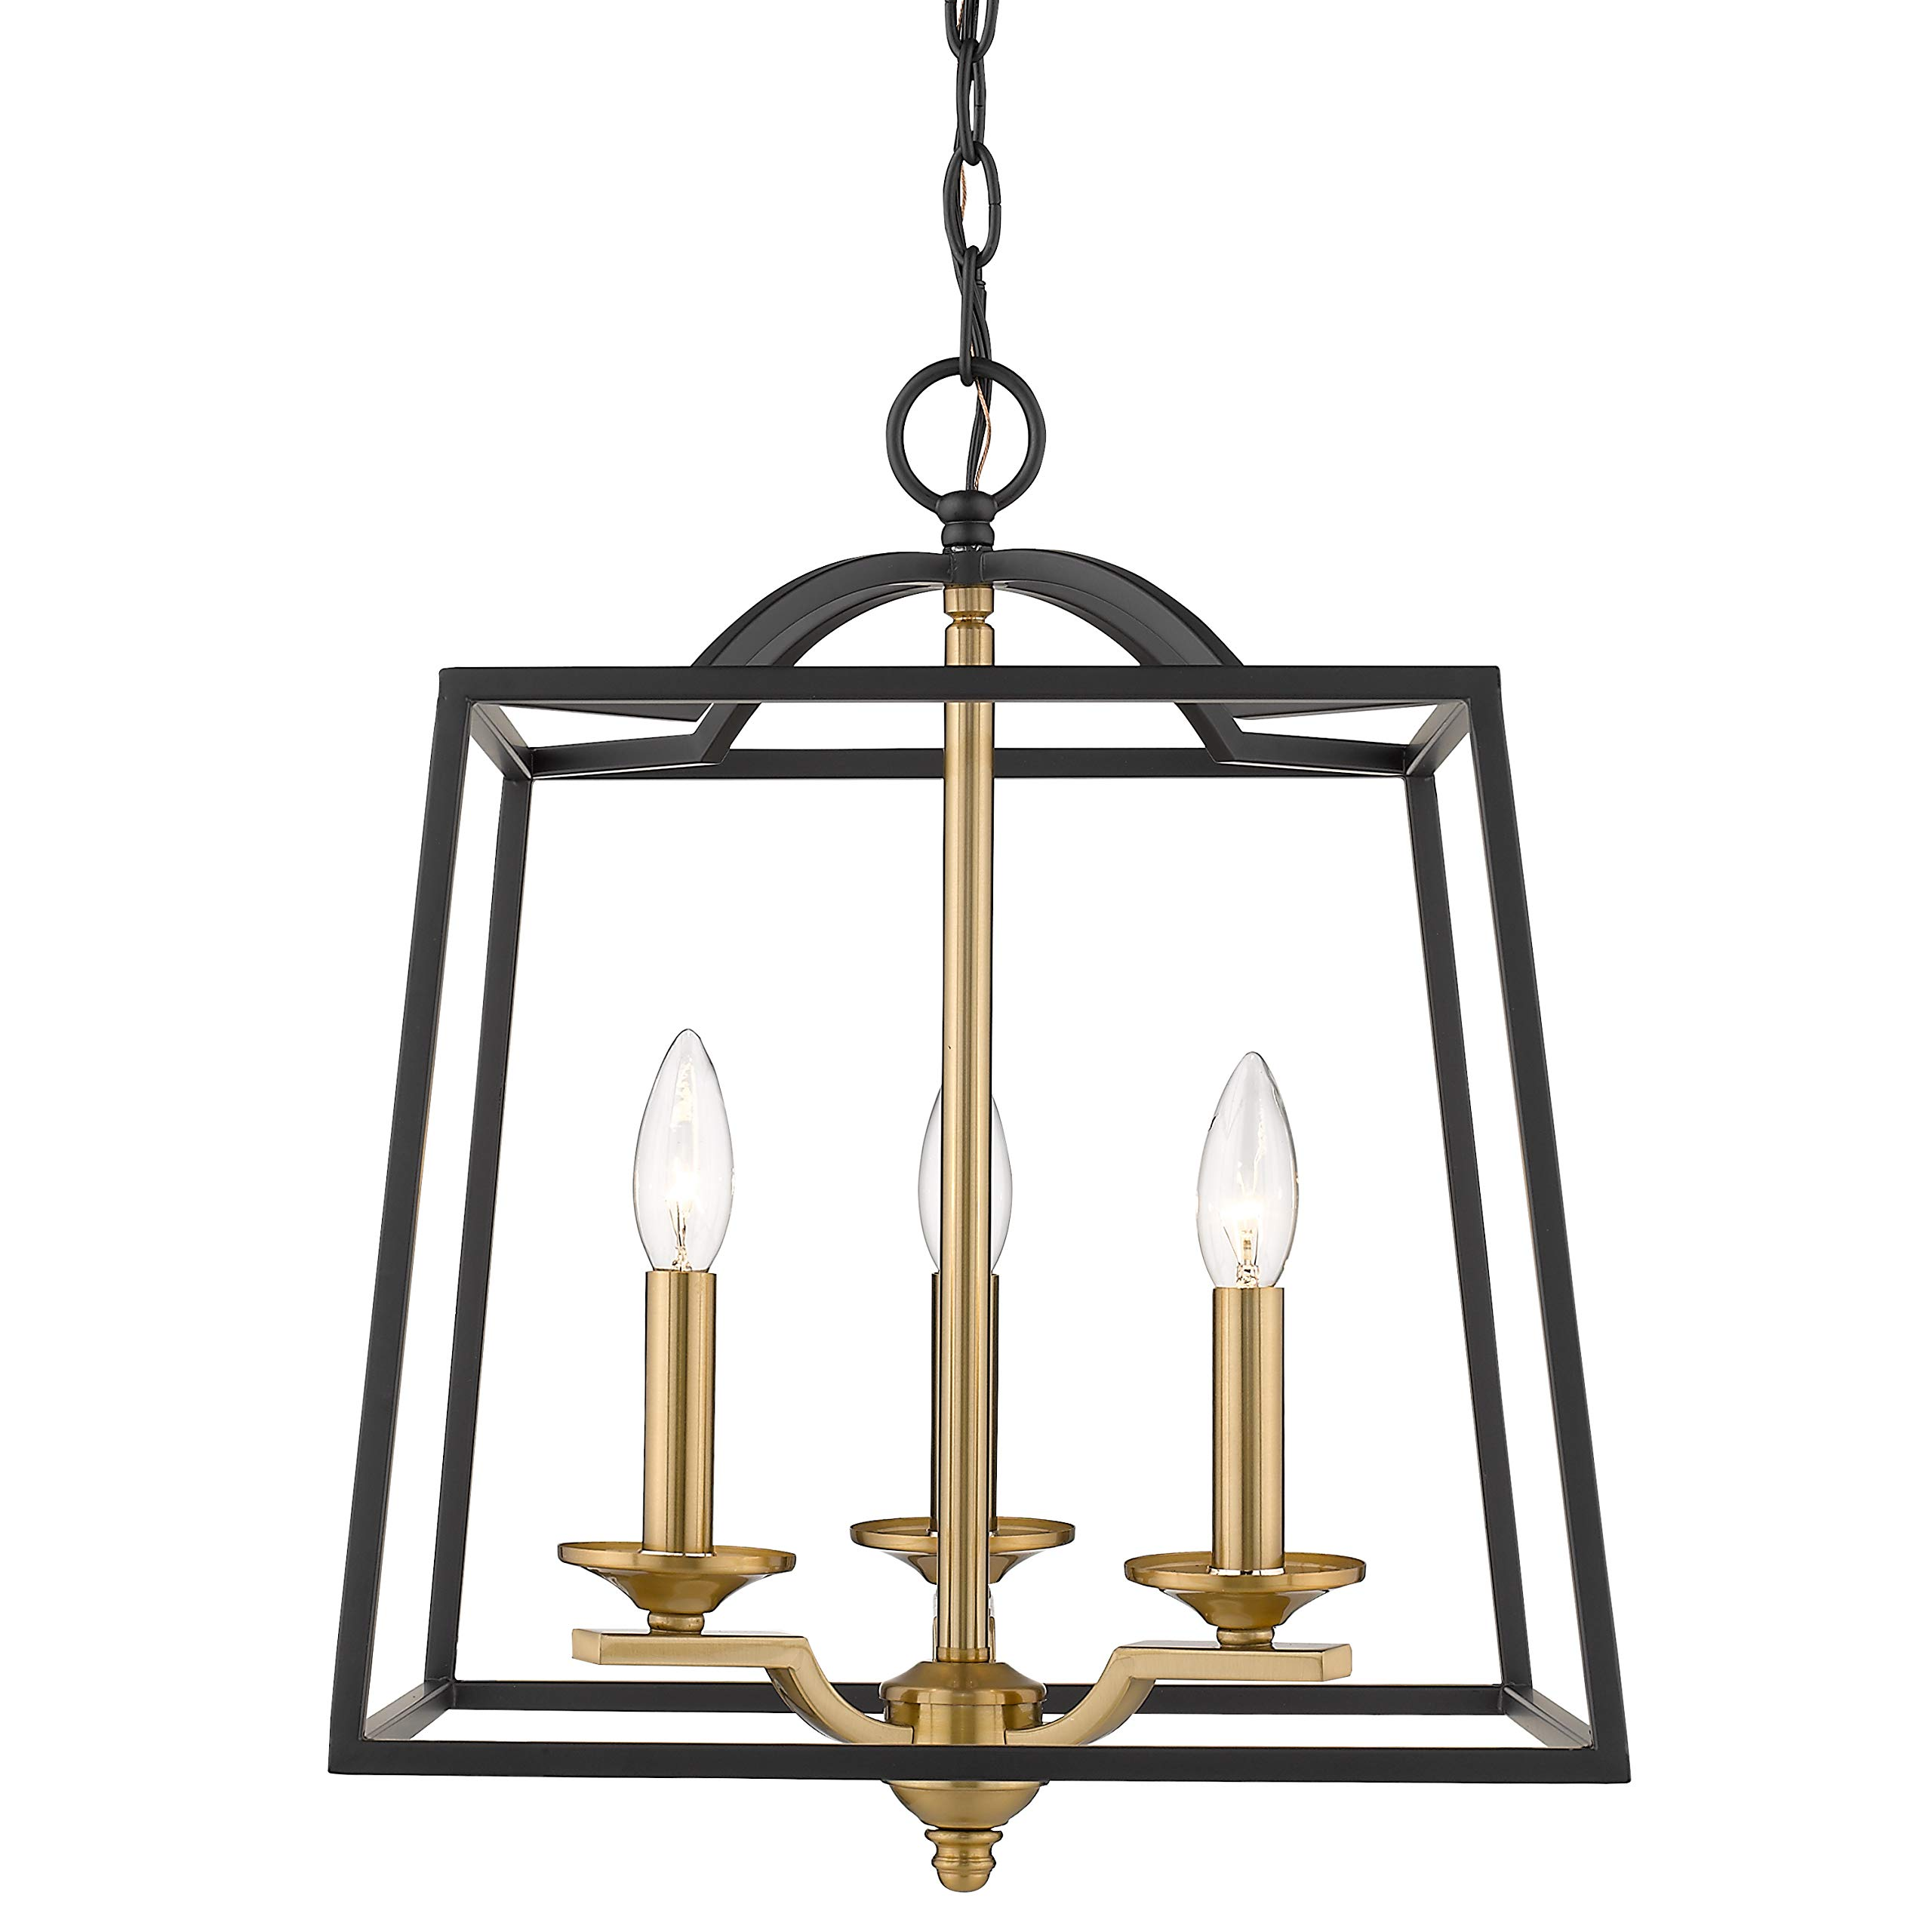 Emliviar 3 Light Foyer Chandelier, Pendant Light with Lantern Style Cage Hanging Light Fixture for Hall Kitchen Island, Black and Gold Finish, 2086P-3 BG